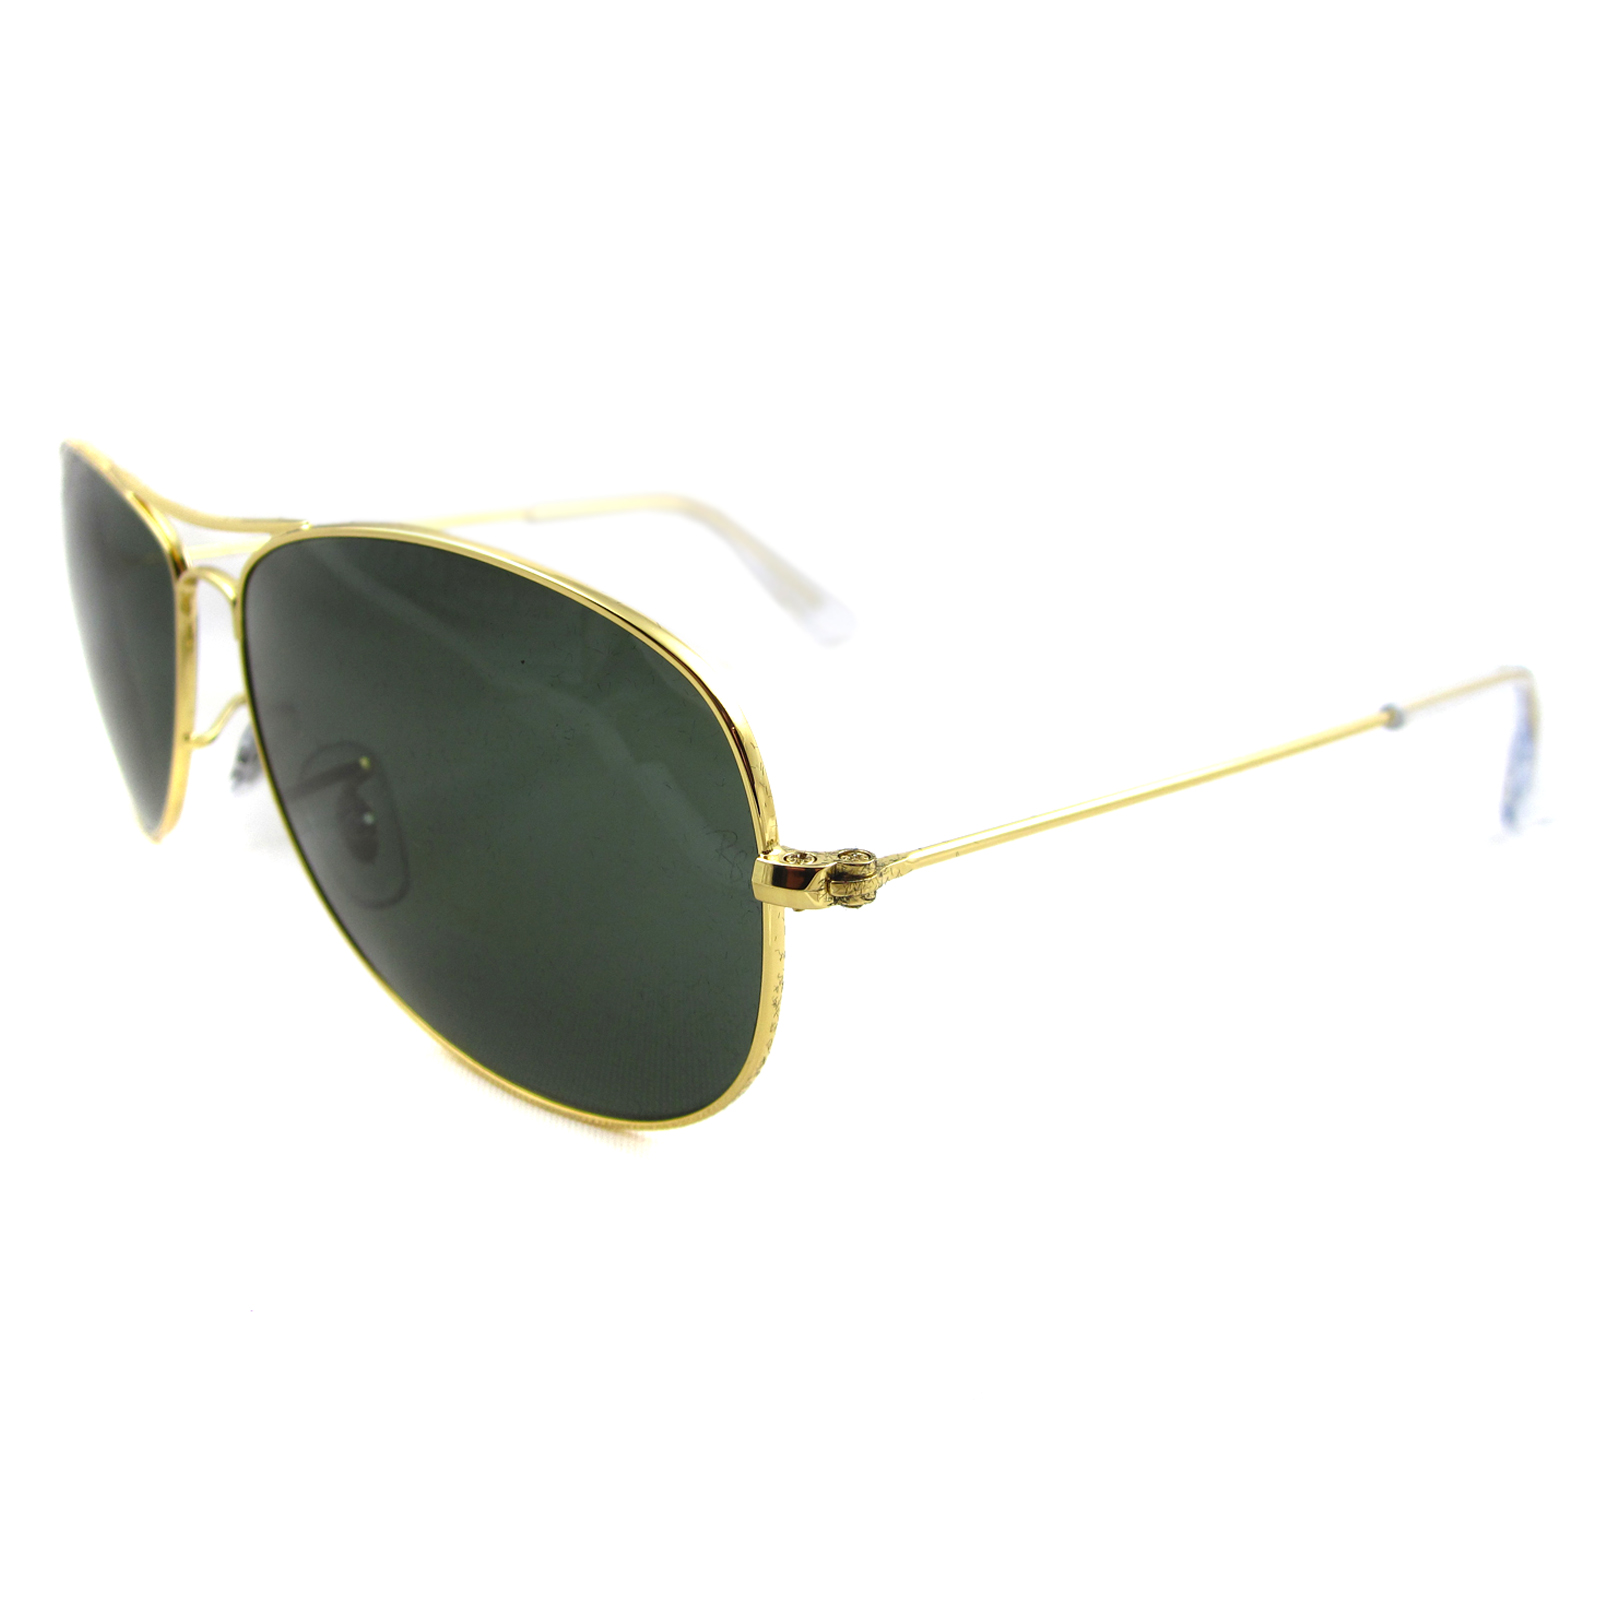 Cheap Ray - Ban Cockpit 3362 Sunglasses - Discounted Sunglasses